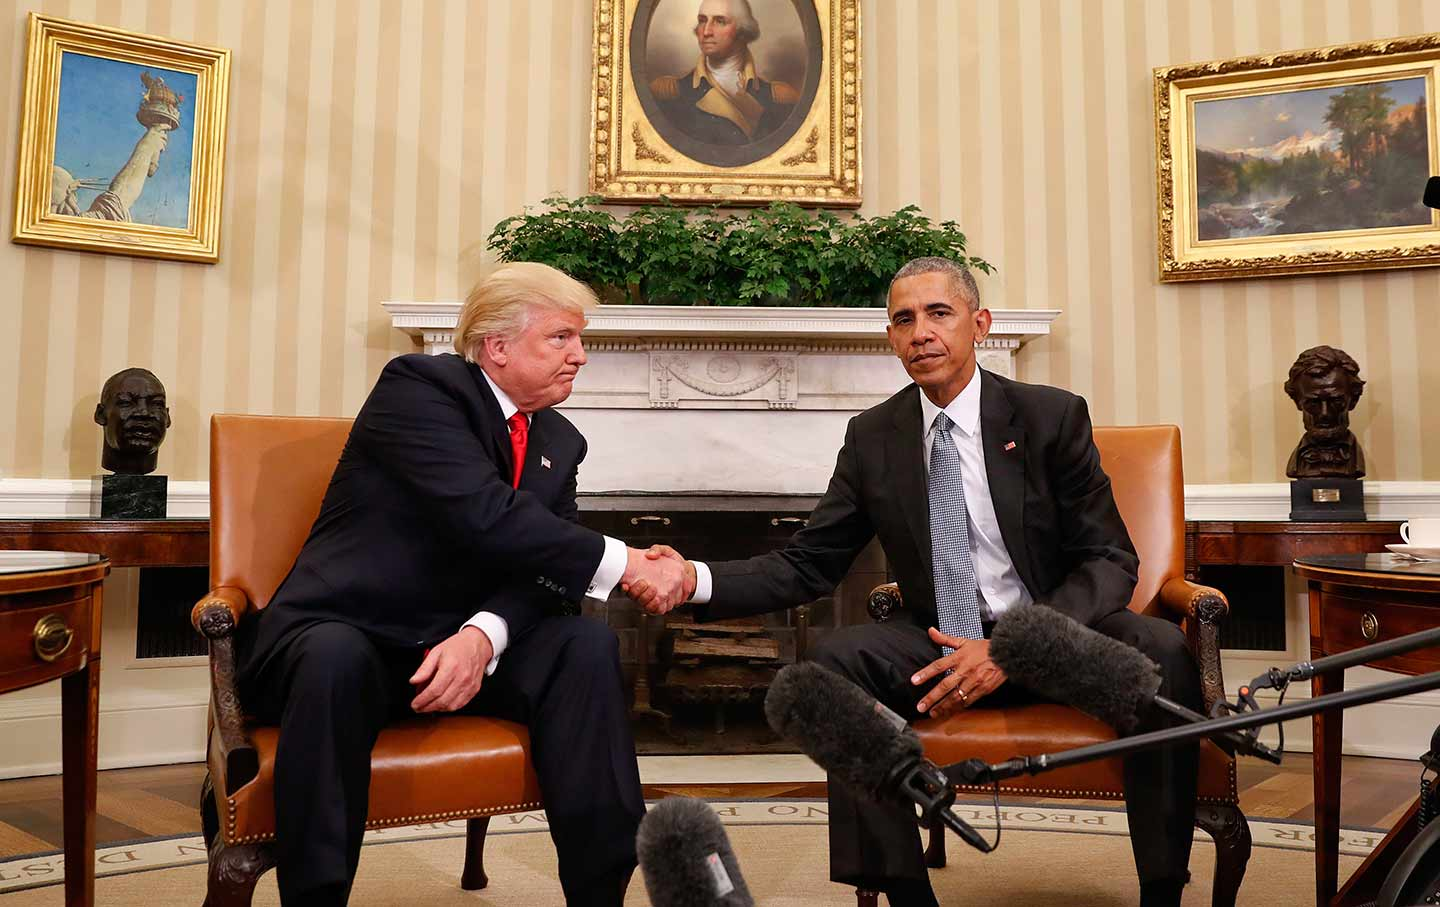 Trump and Obama meet